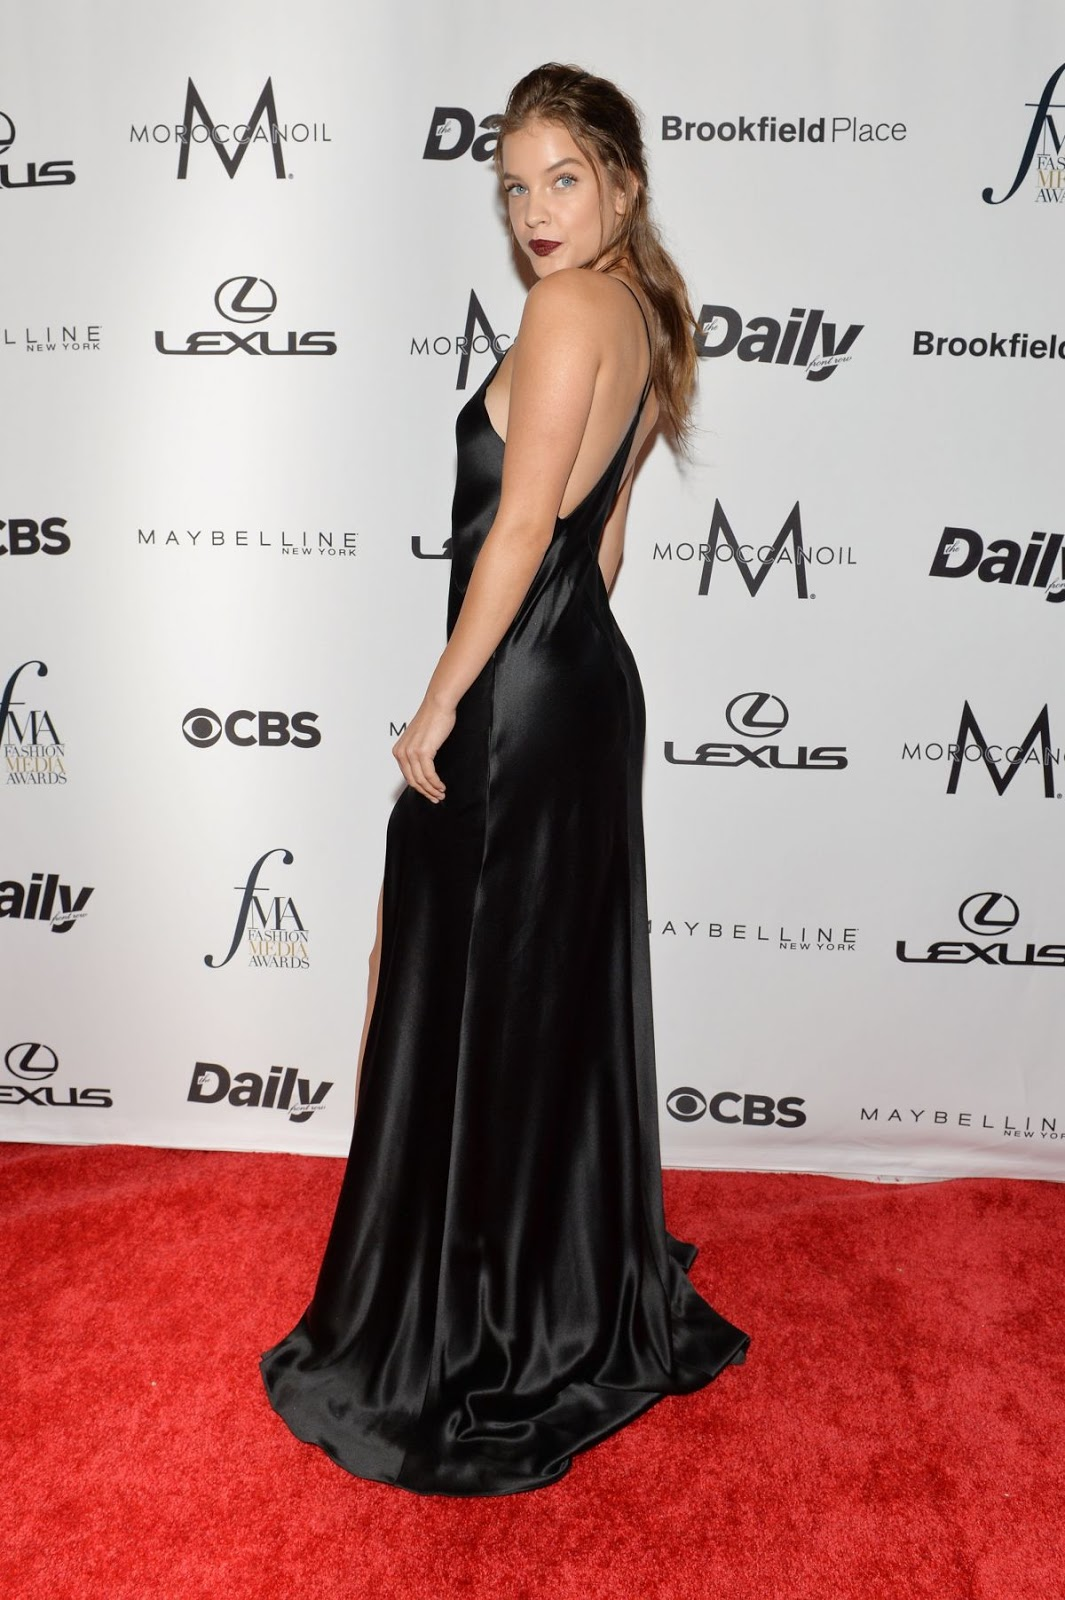 Barbara Palvin At The Daily Front Row's 4th Annual Fashion Media Awards In New York